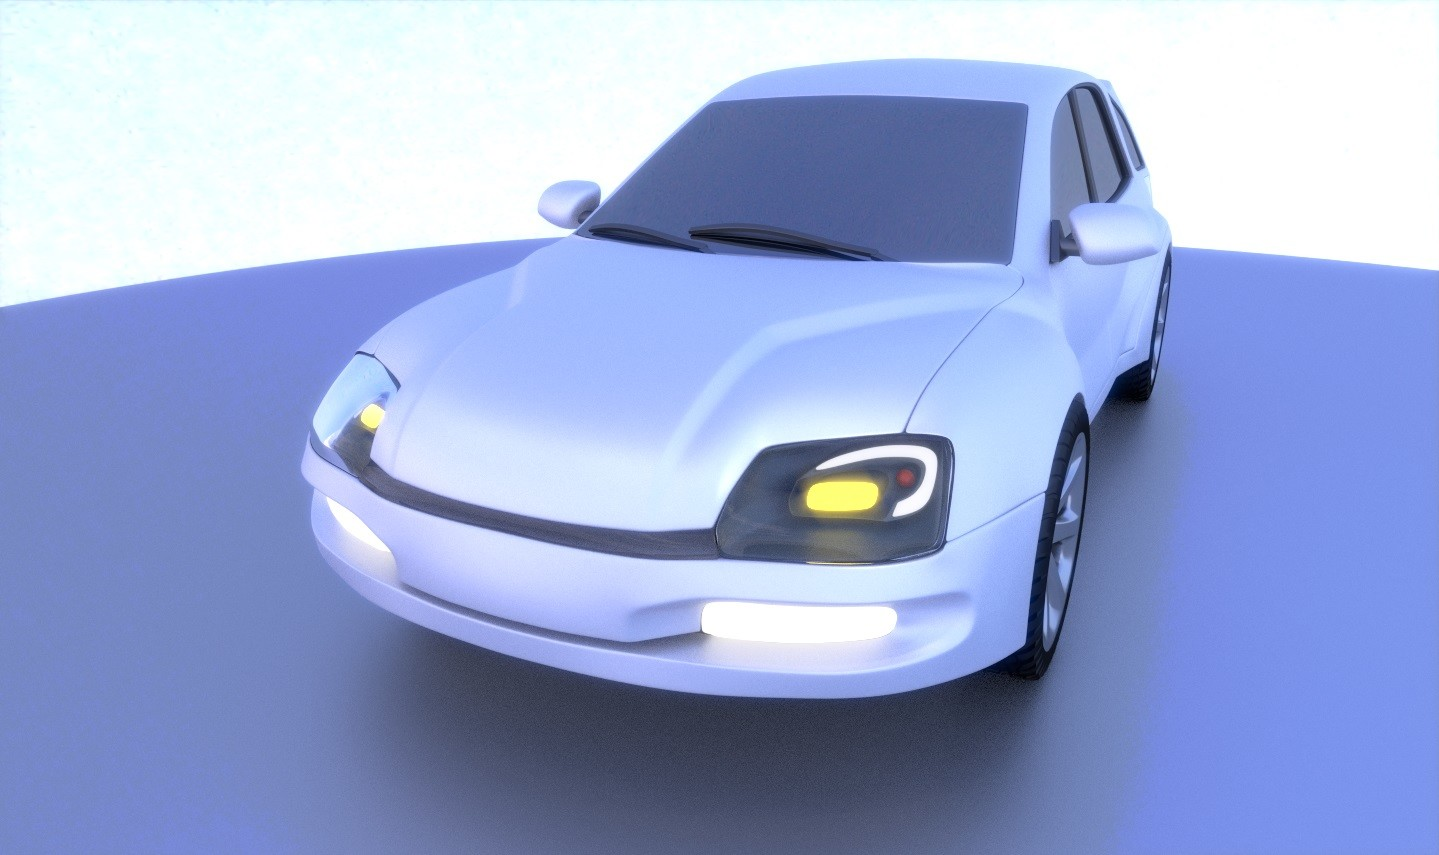 Another render of the concept car with a different lighting setup.